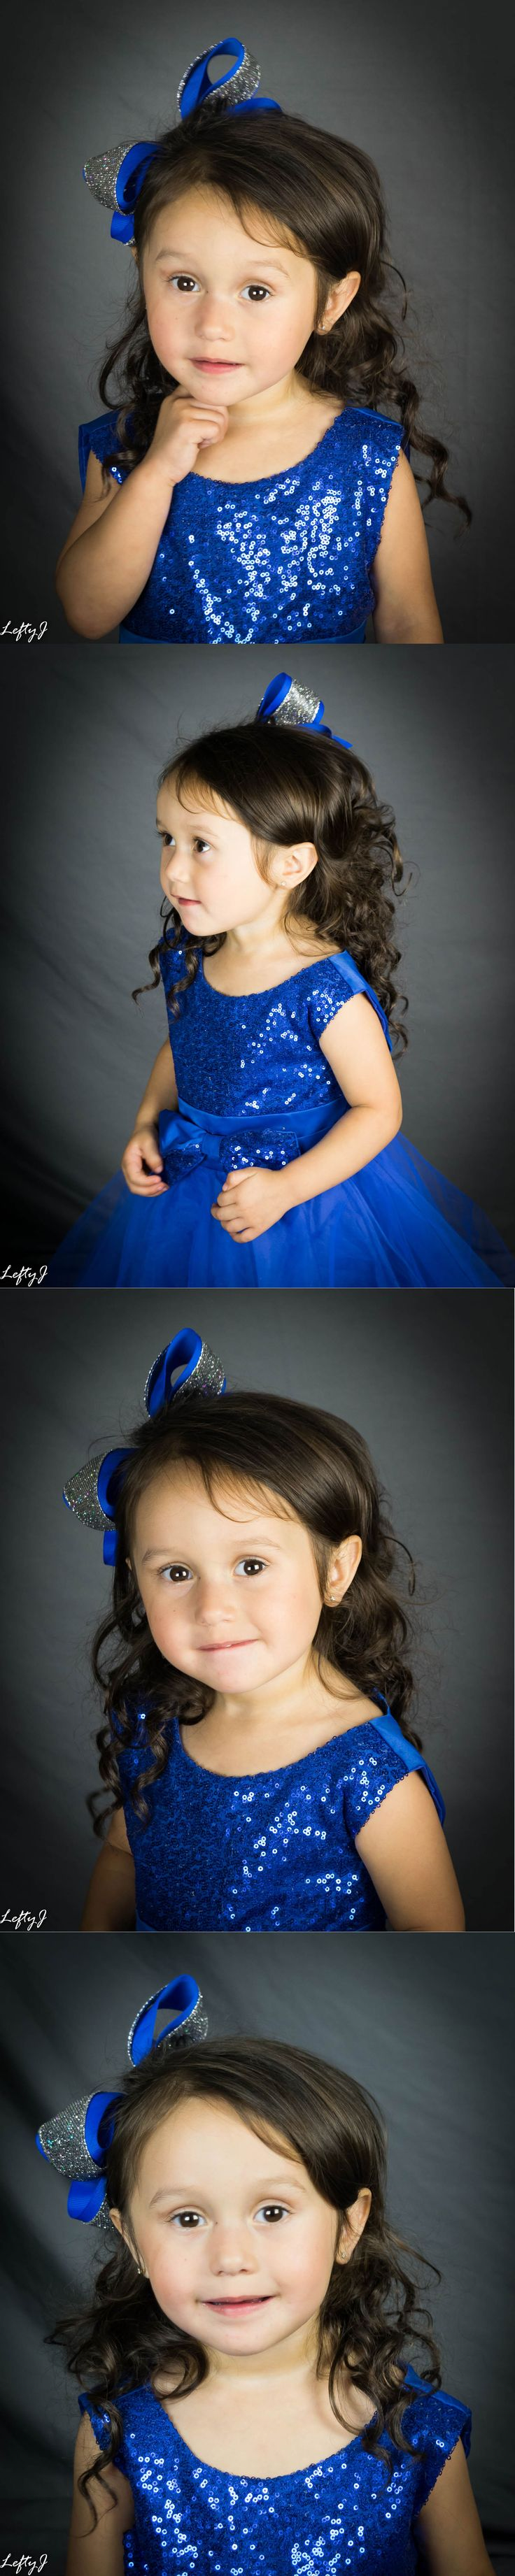 The adorable little Averie came into our studio for some headshots for upcoming pageants. We think they came out pretty good. http://www.leftyjphotography.com #corpuschristiphotography #corpuschristiphotographer #pageants #kidphotography #childrenphotography #pageantphotography